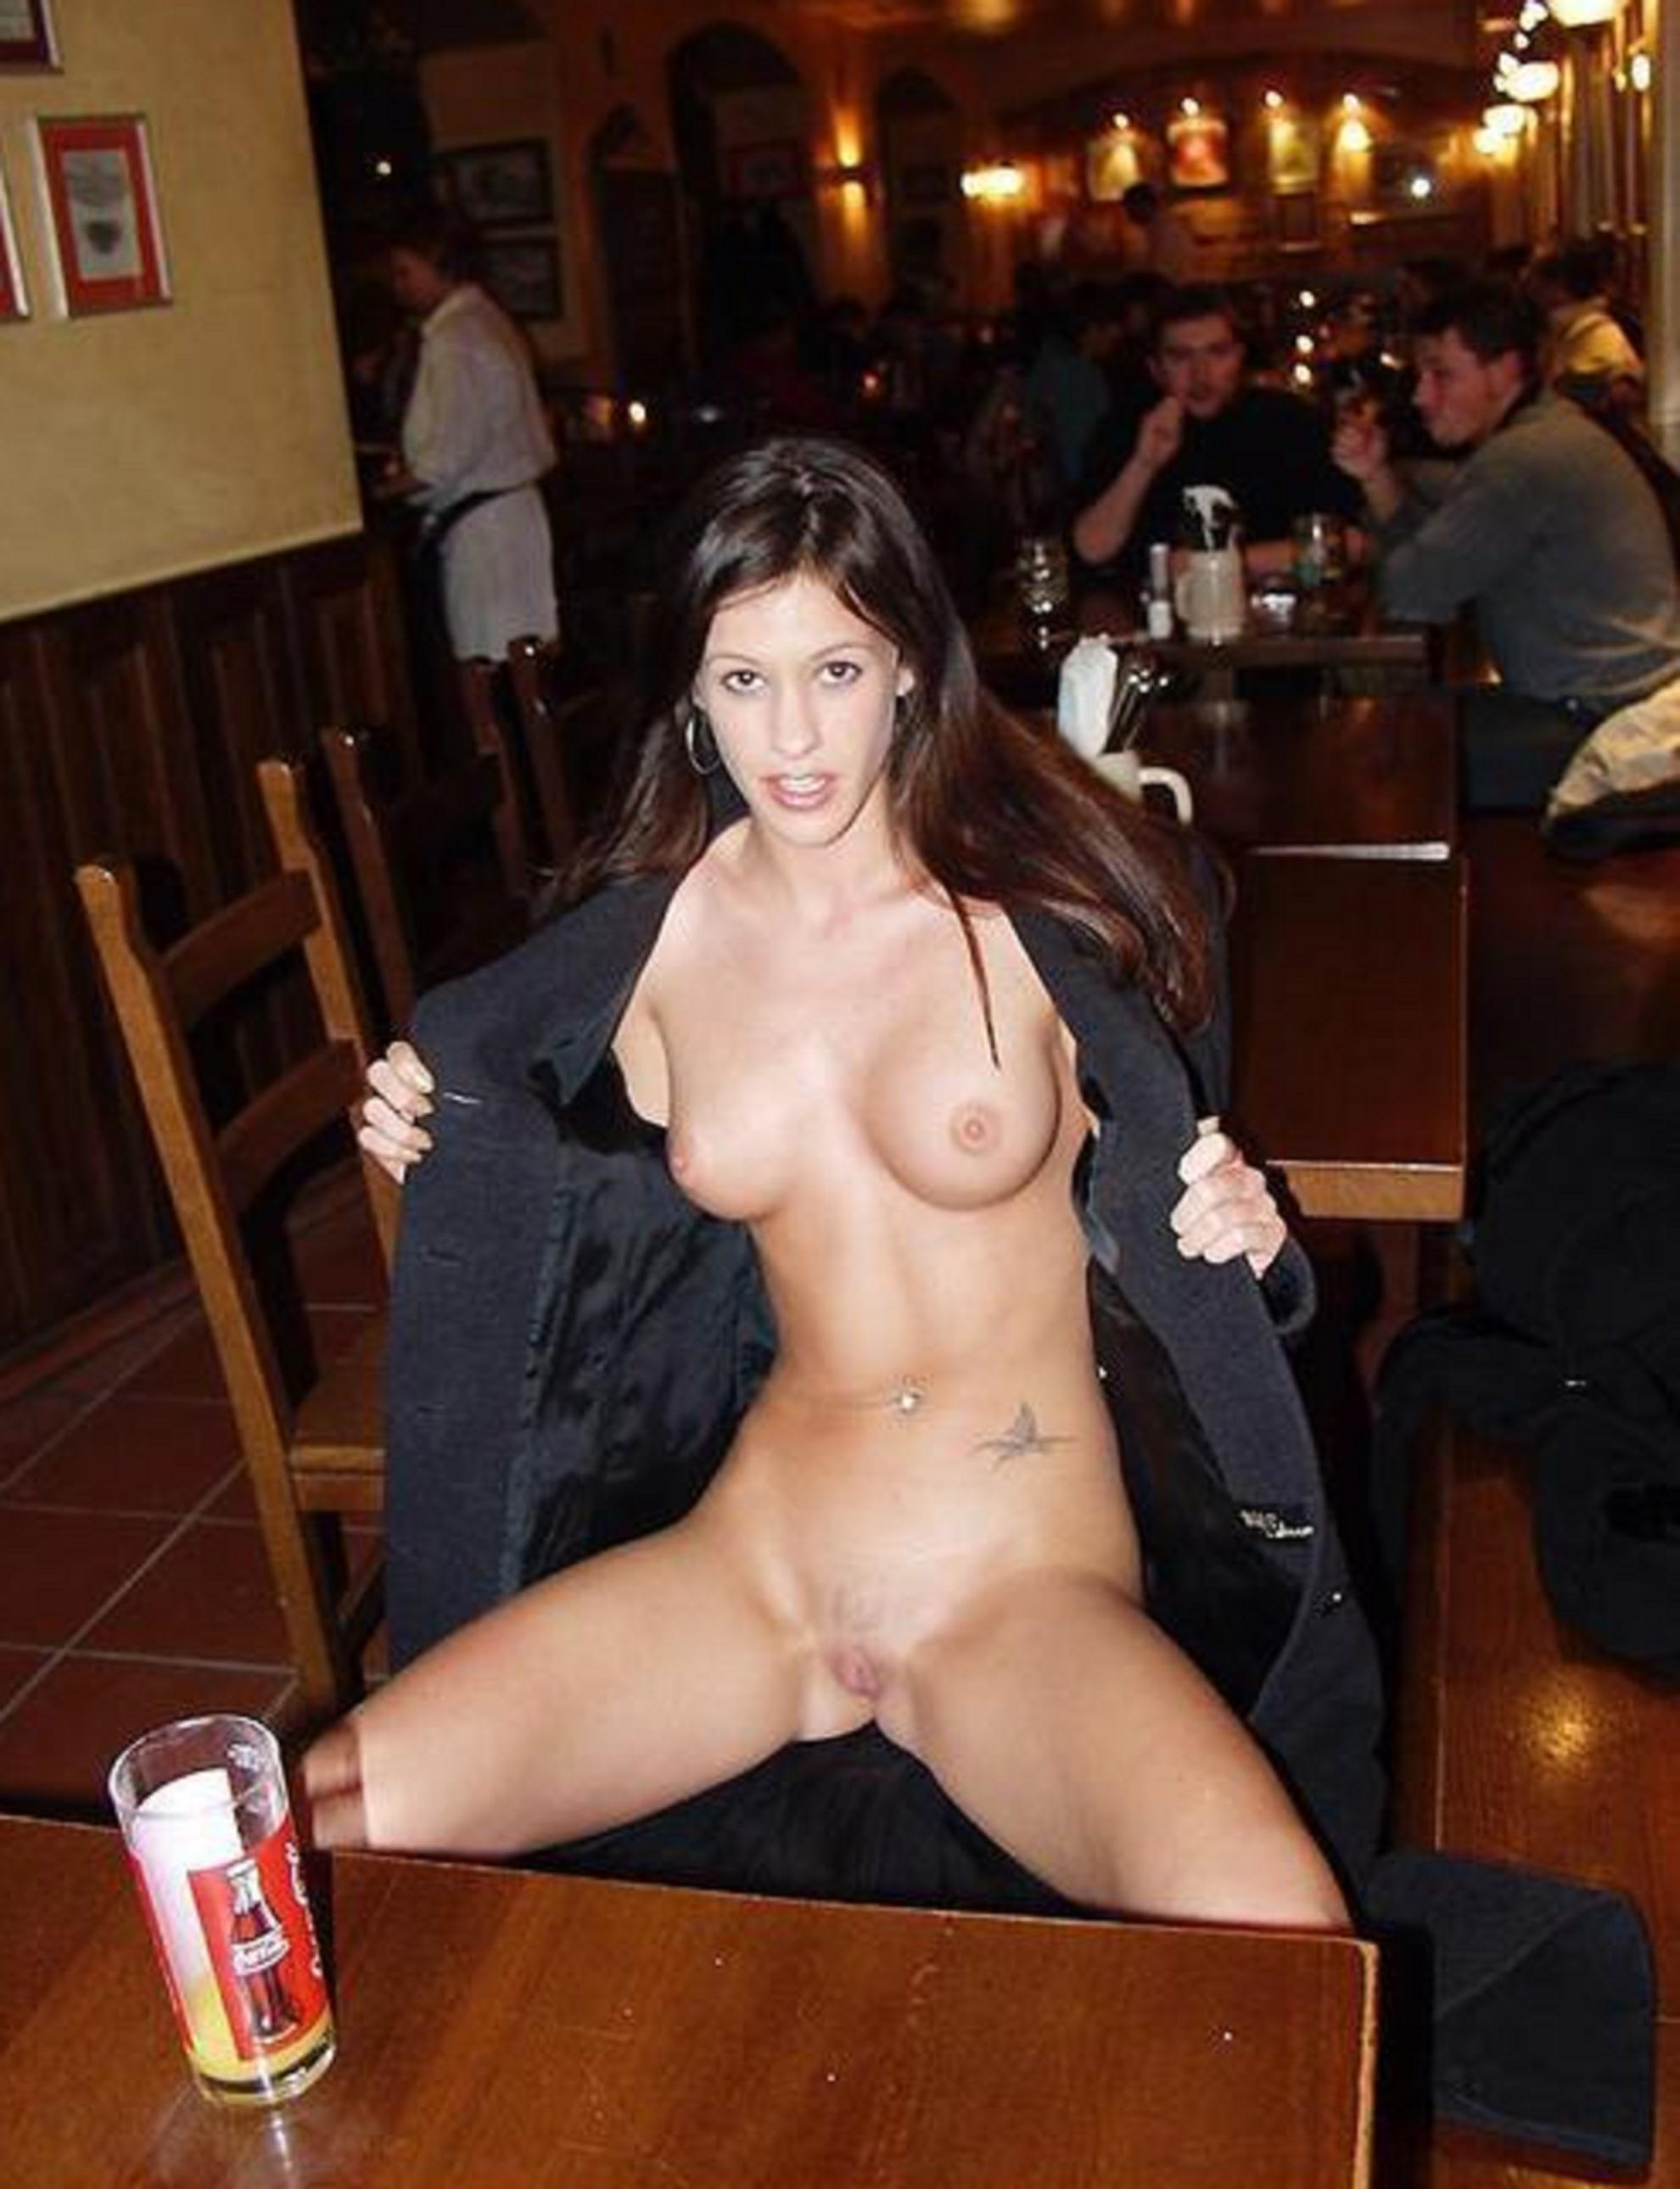 Hot Girl Naked On Terrace - Public Striptease Exhibitionism